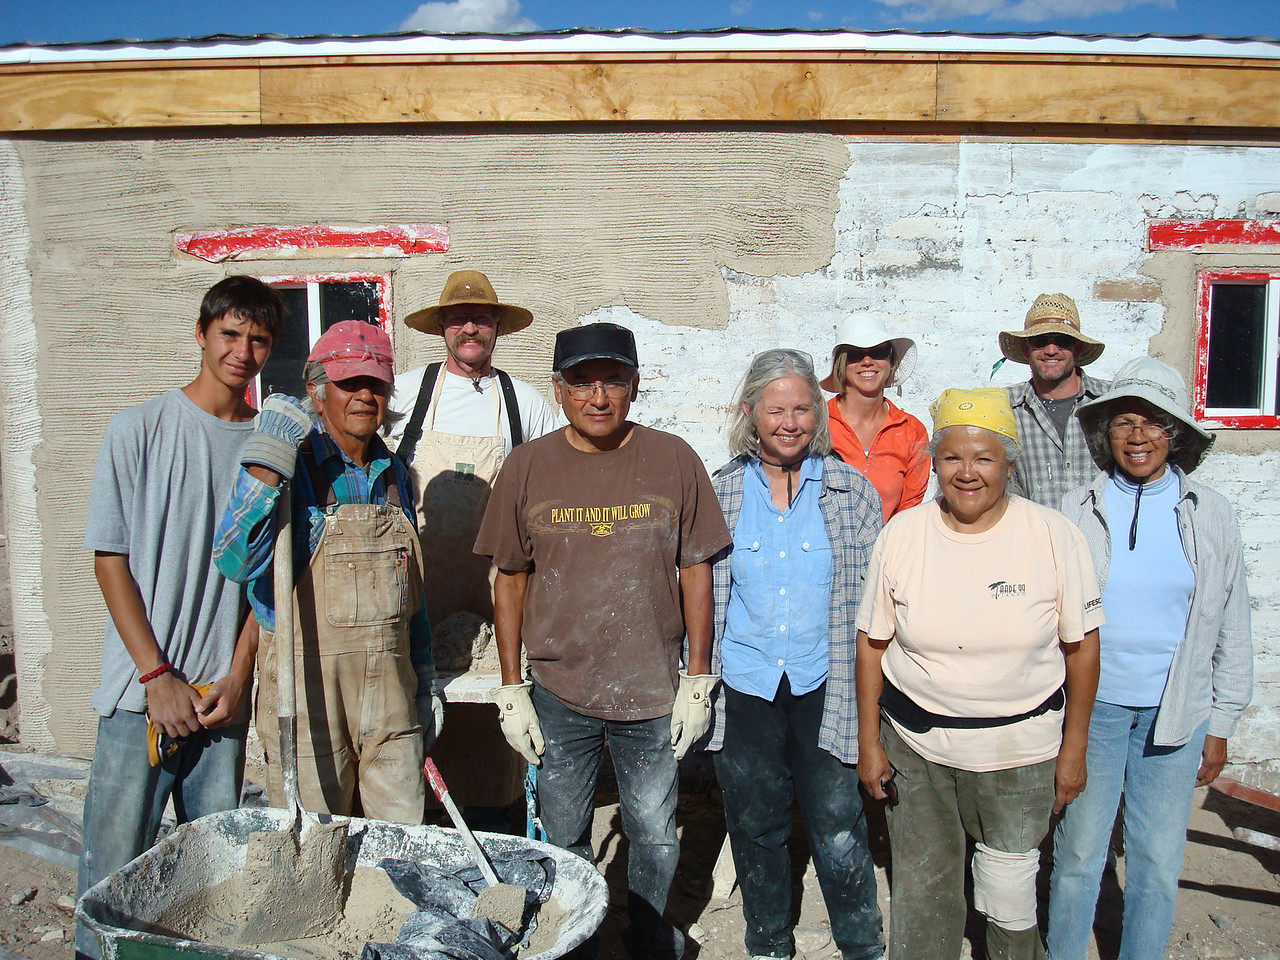 Lime Stucco seminar participants. From left to right, Raine Littlebird, Larry Littlebird, Tim White, Alan Toledo (Jemez Pueblo), Patty Wasterman, Laura Mack, Wilma Toledo (Jemez Pueblo), Daniel Goldthwaite, Mary Toledo Tang (Jemez Pueblo). Not in picture, three Pueblo men and photographer, Deborah Littlebird.